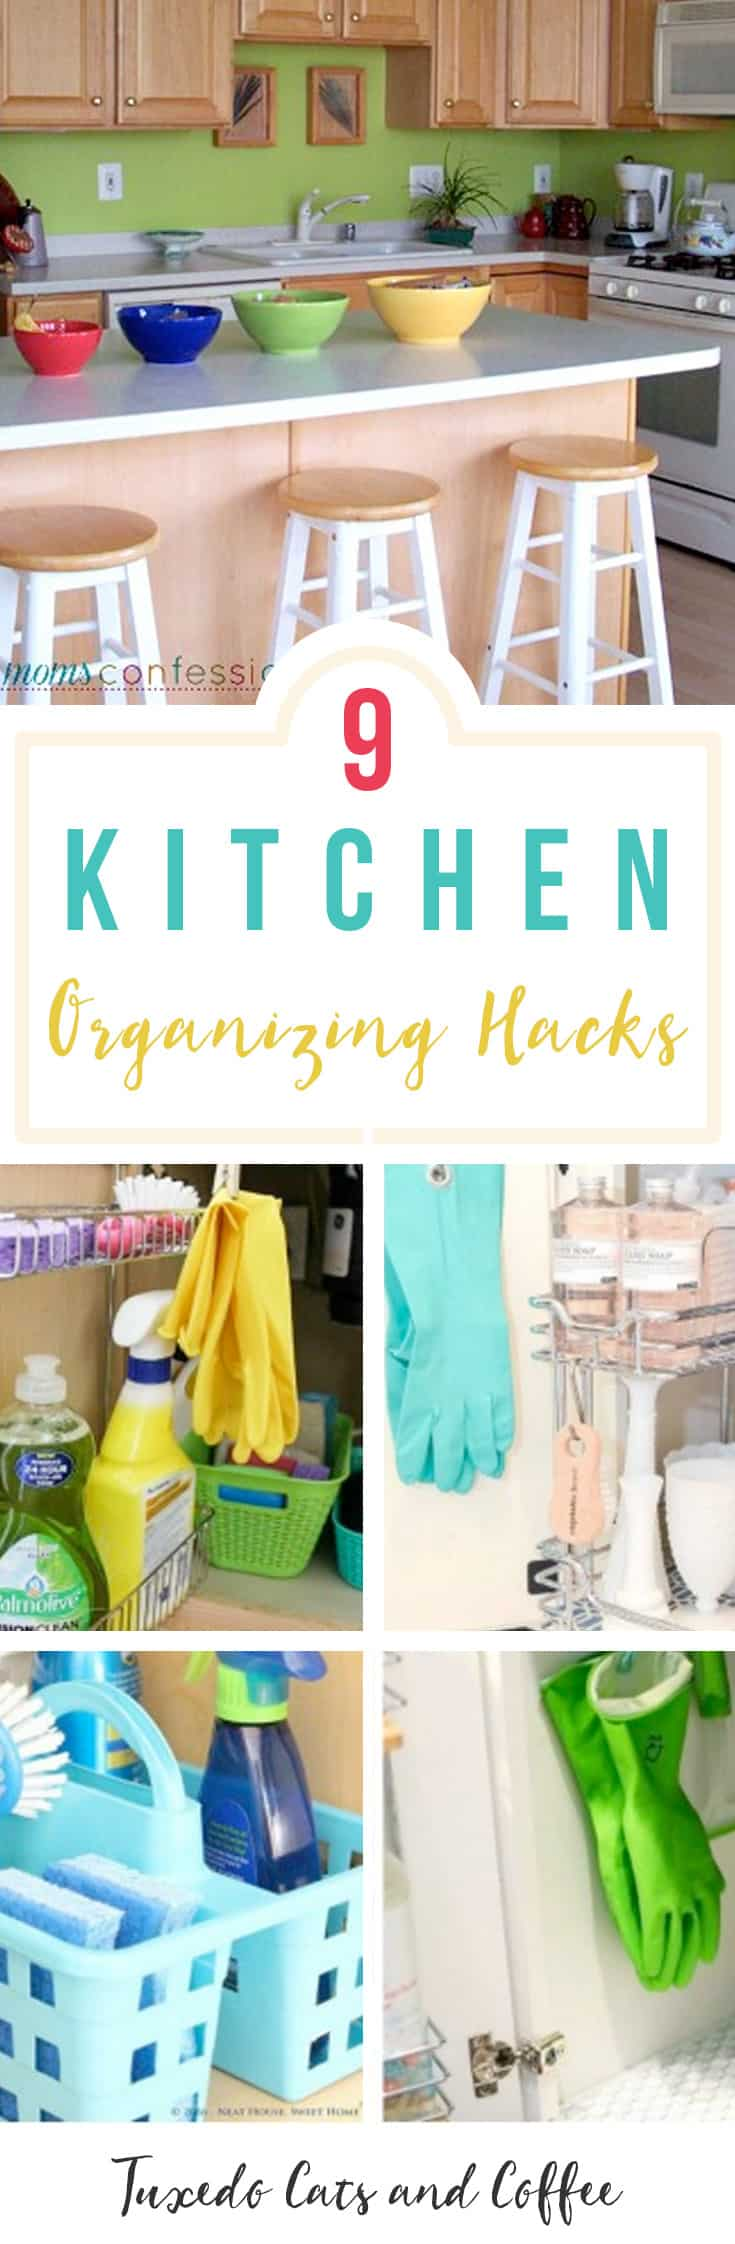 Is your kitchen a chaotic mess? Do you have trouble finding where things are or having no counter space to prepare meals because there's stuff everywhere? Here are 9 kitchen organizing hacks for a neater, better organized kitchen space.